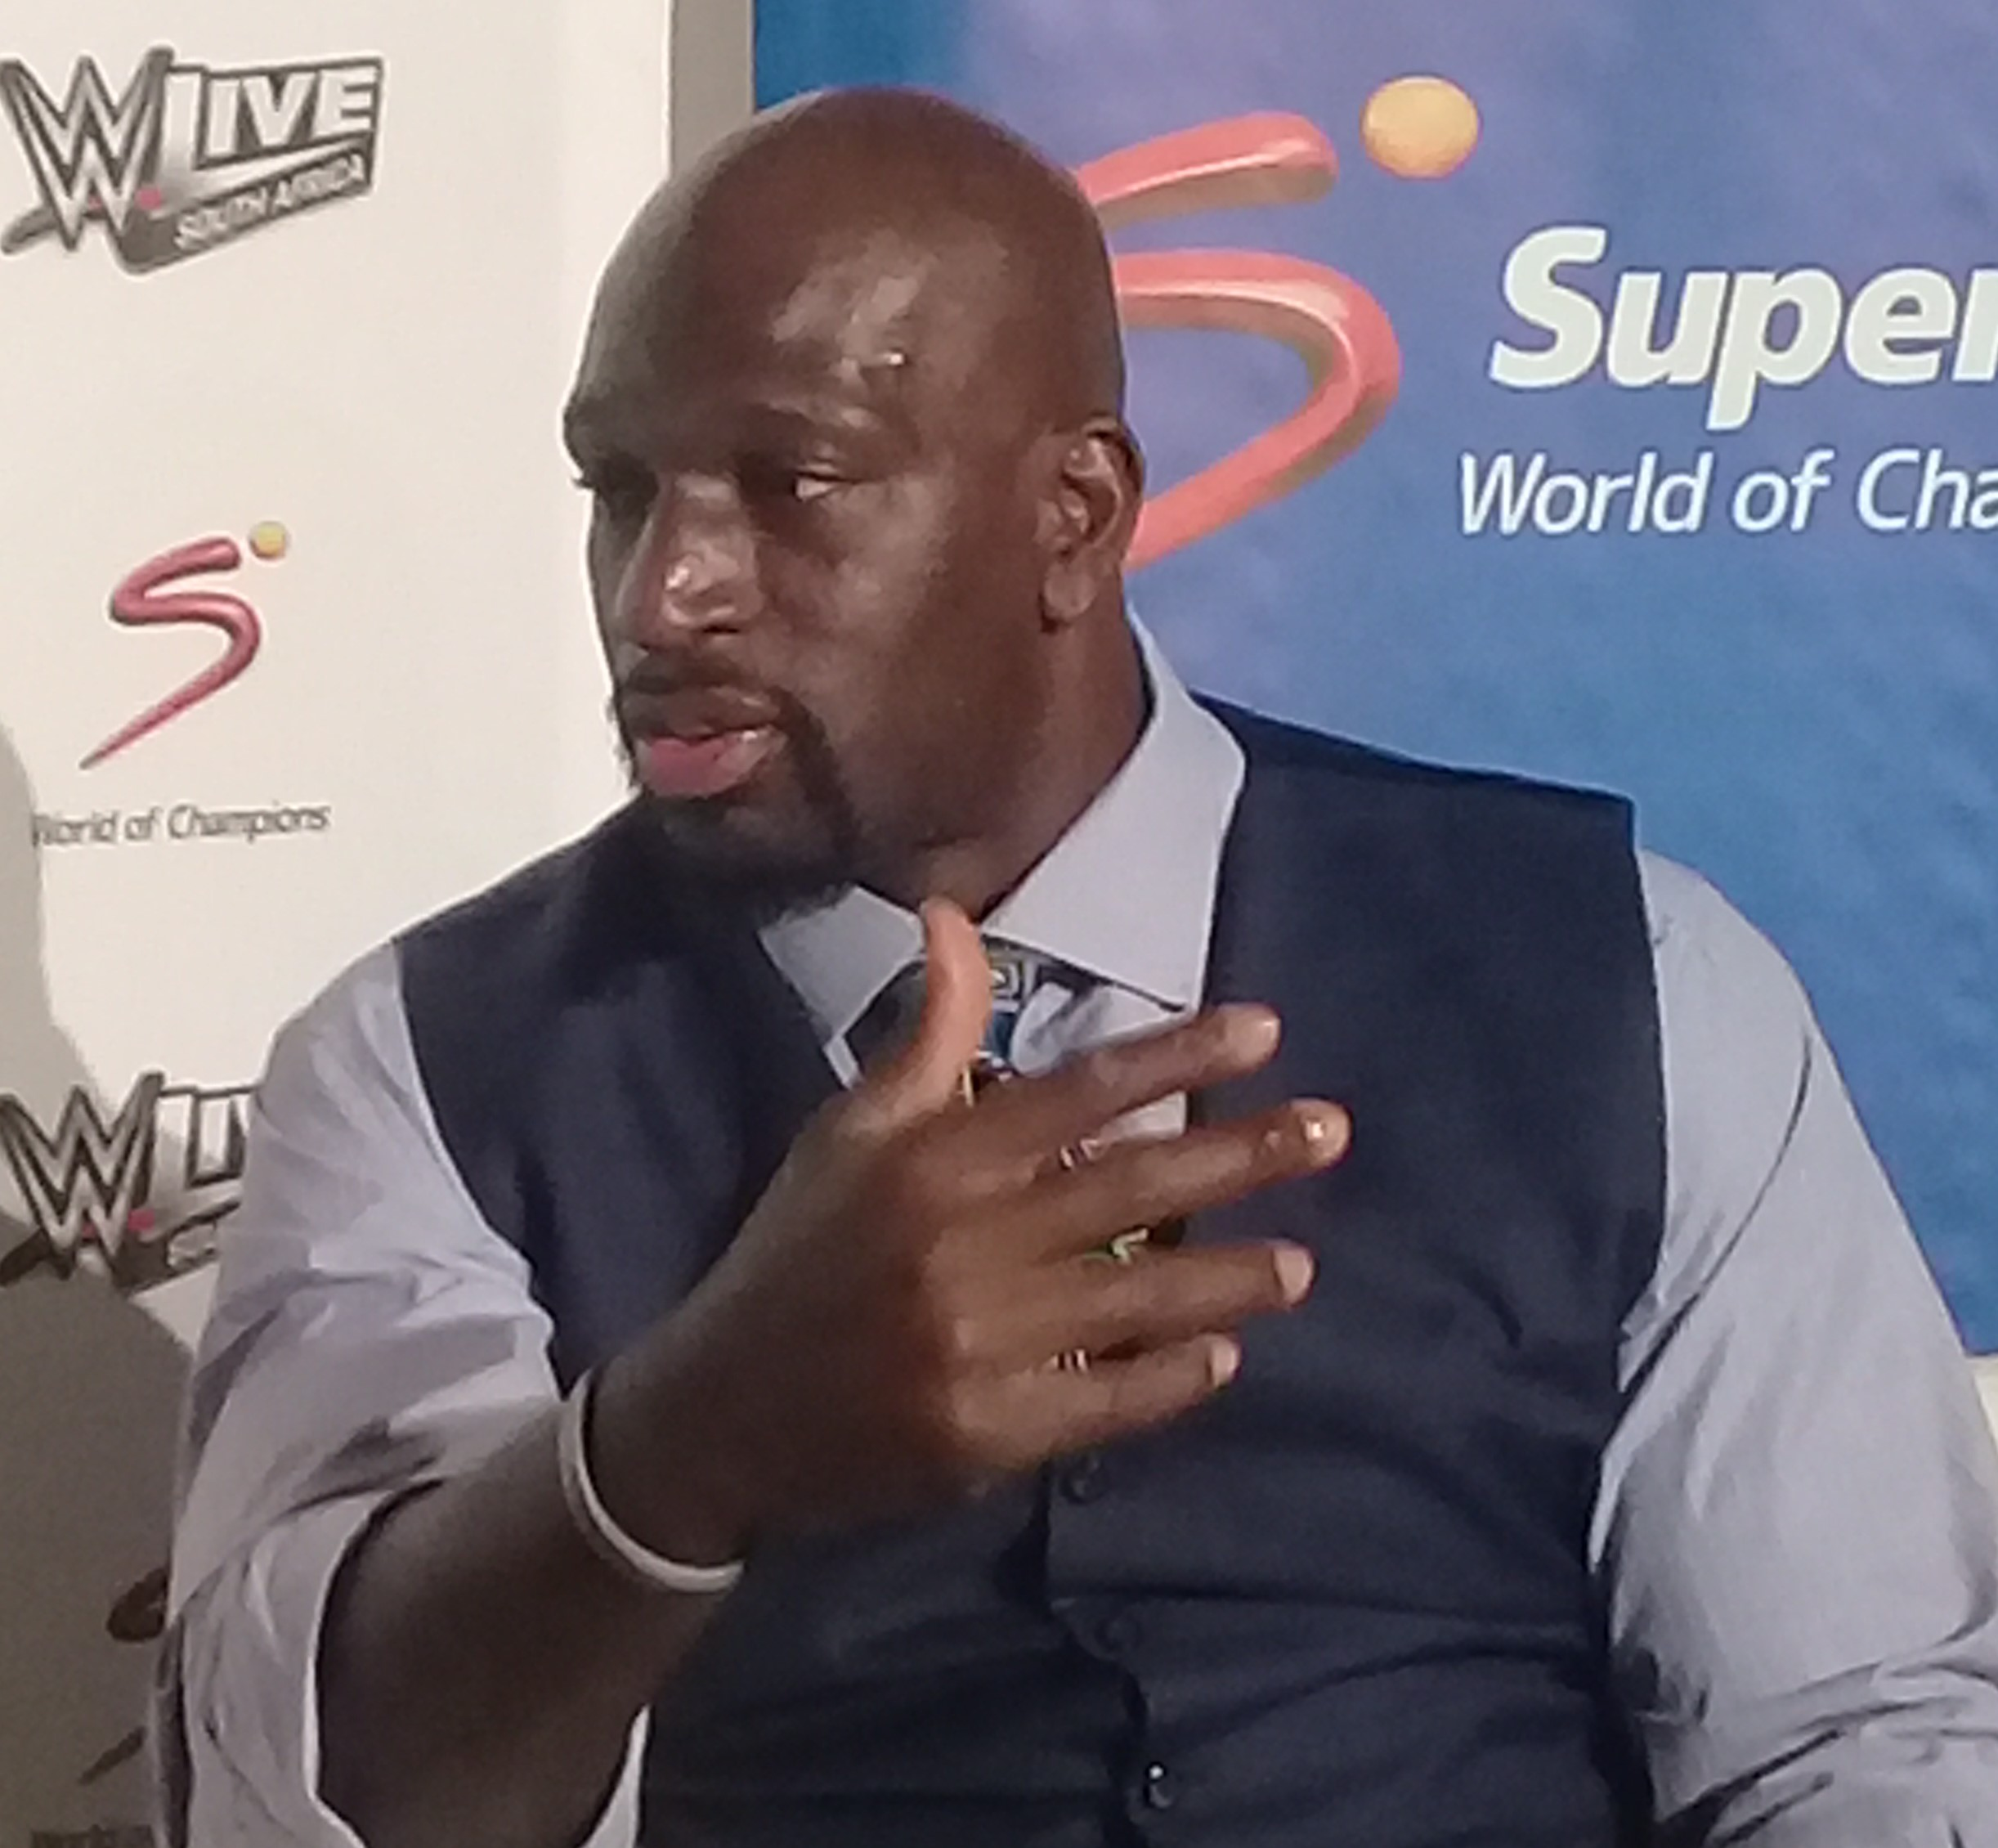 WWE boosts SuperSport ratings, now it's coming live to SA (with video and photos)